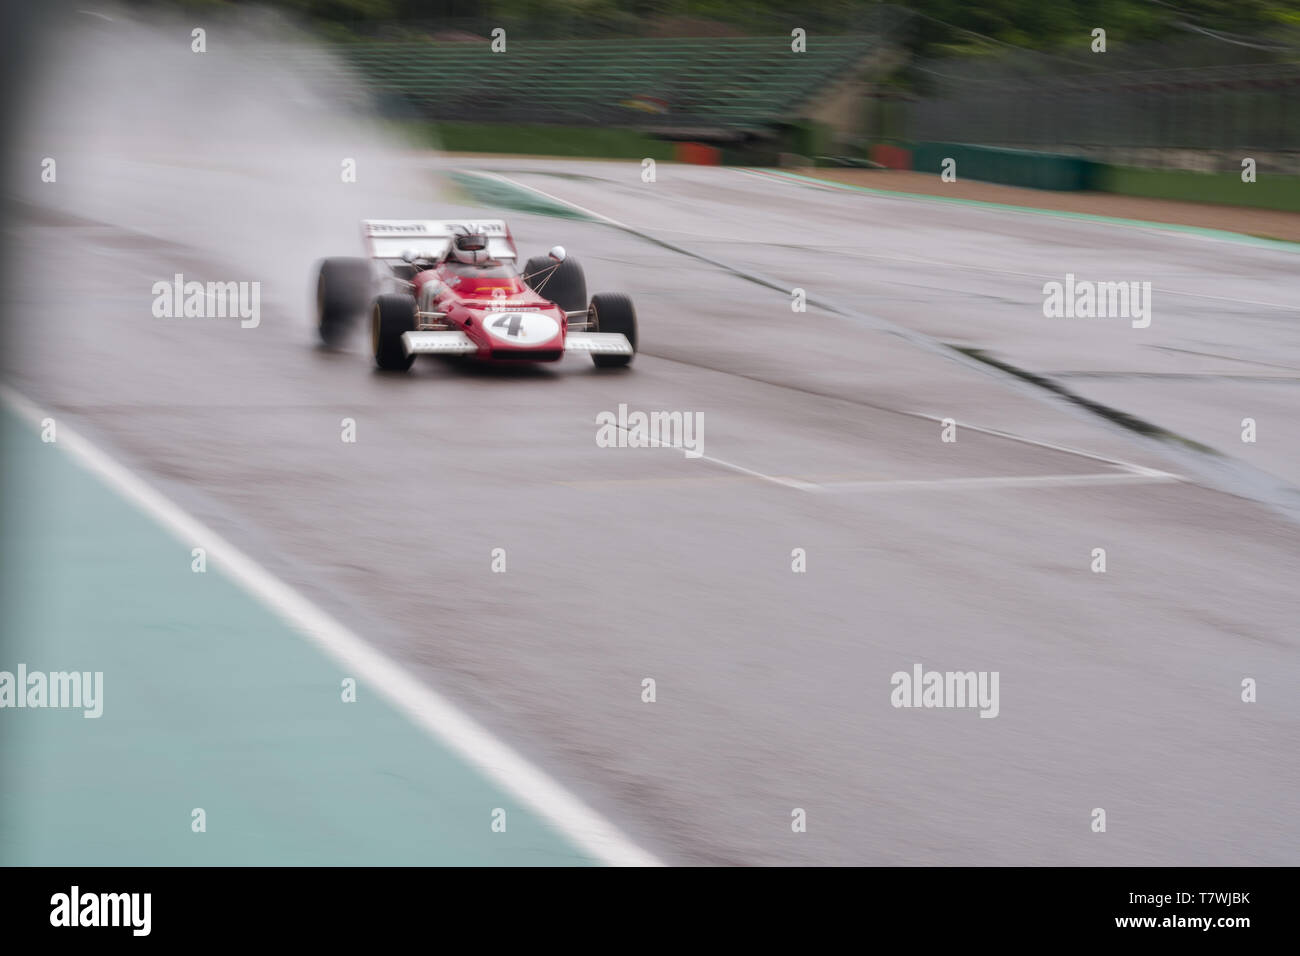 vintage formula one car is flying on a wet track, panning photo Stock Photo